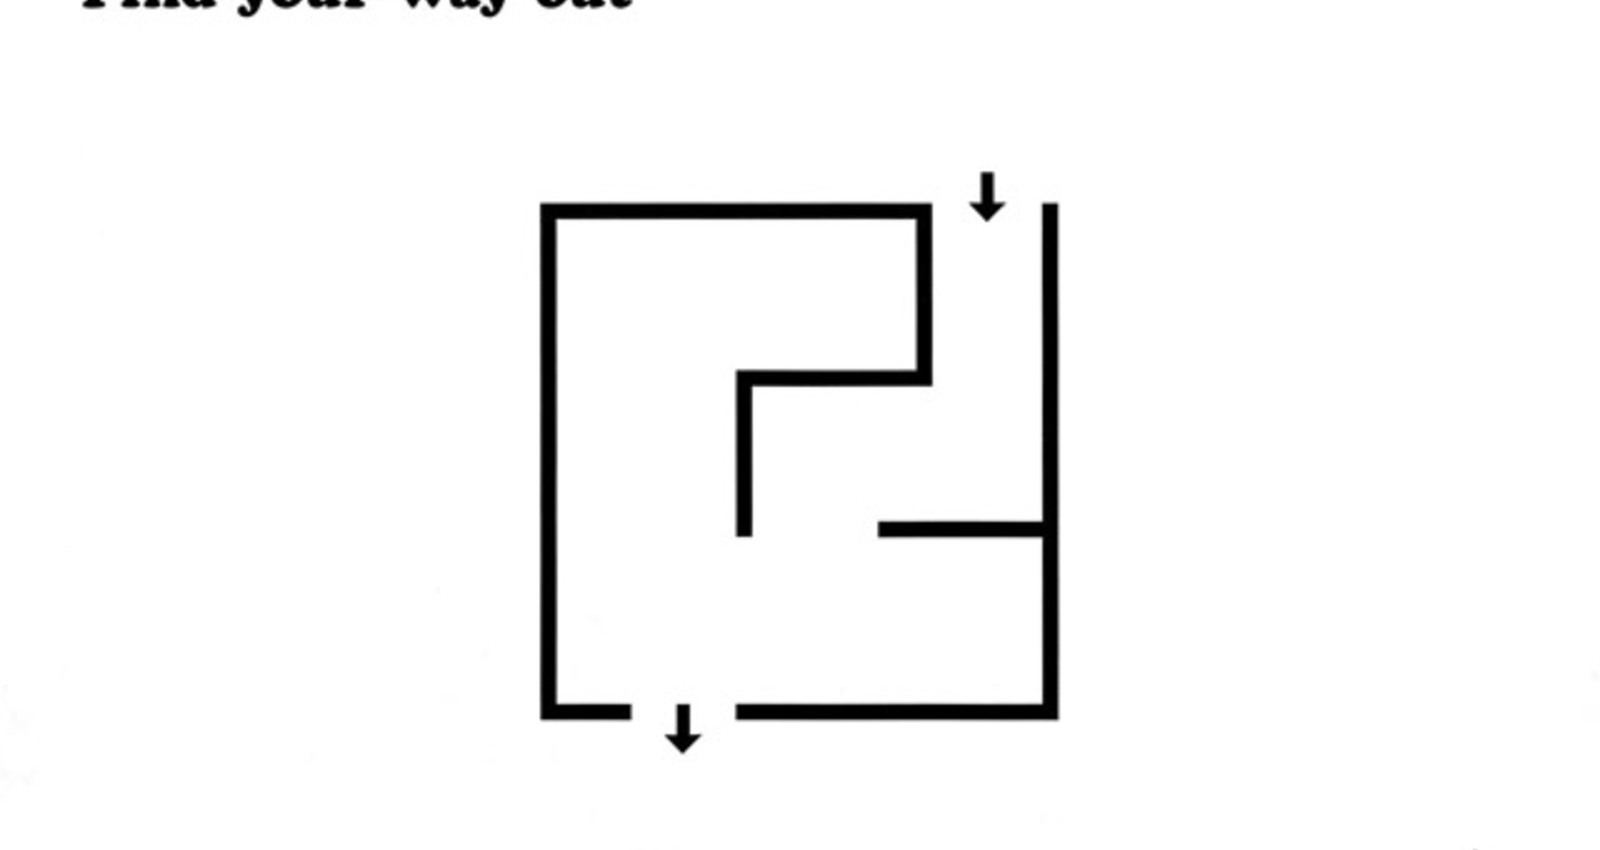 Maze, Spot the Difference, Joint the dots, Word Find